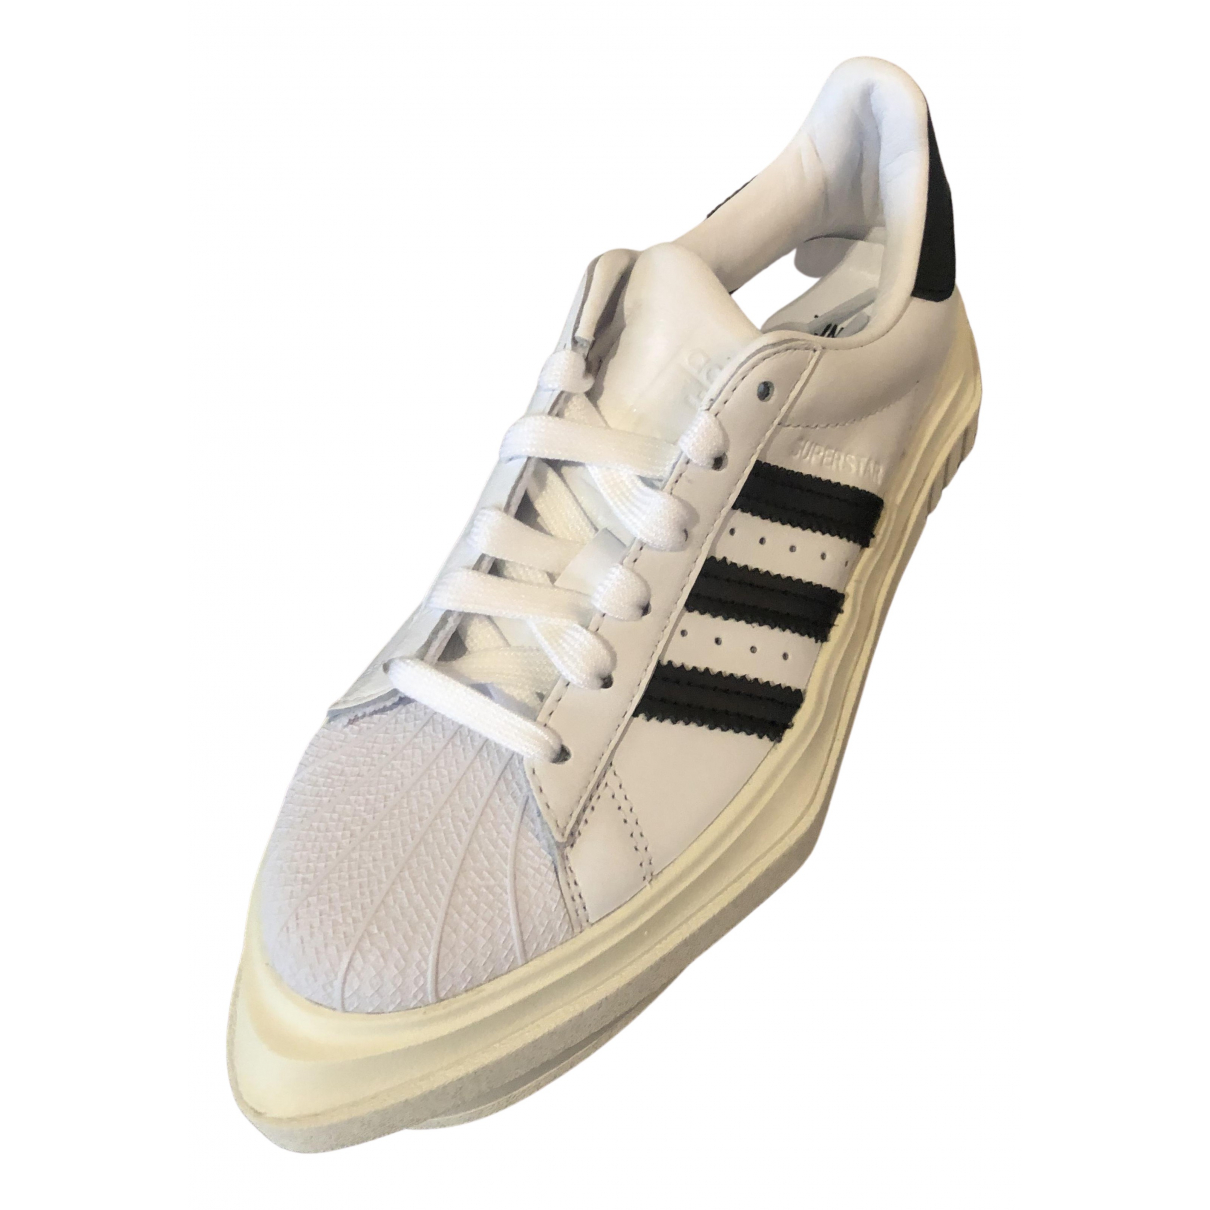 Adidas Superstar Black Leather Trainers for Women 6 US